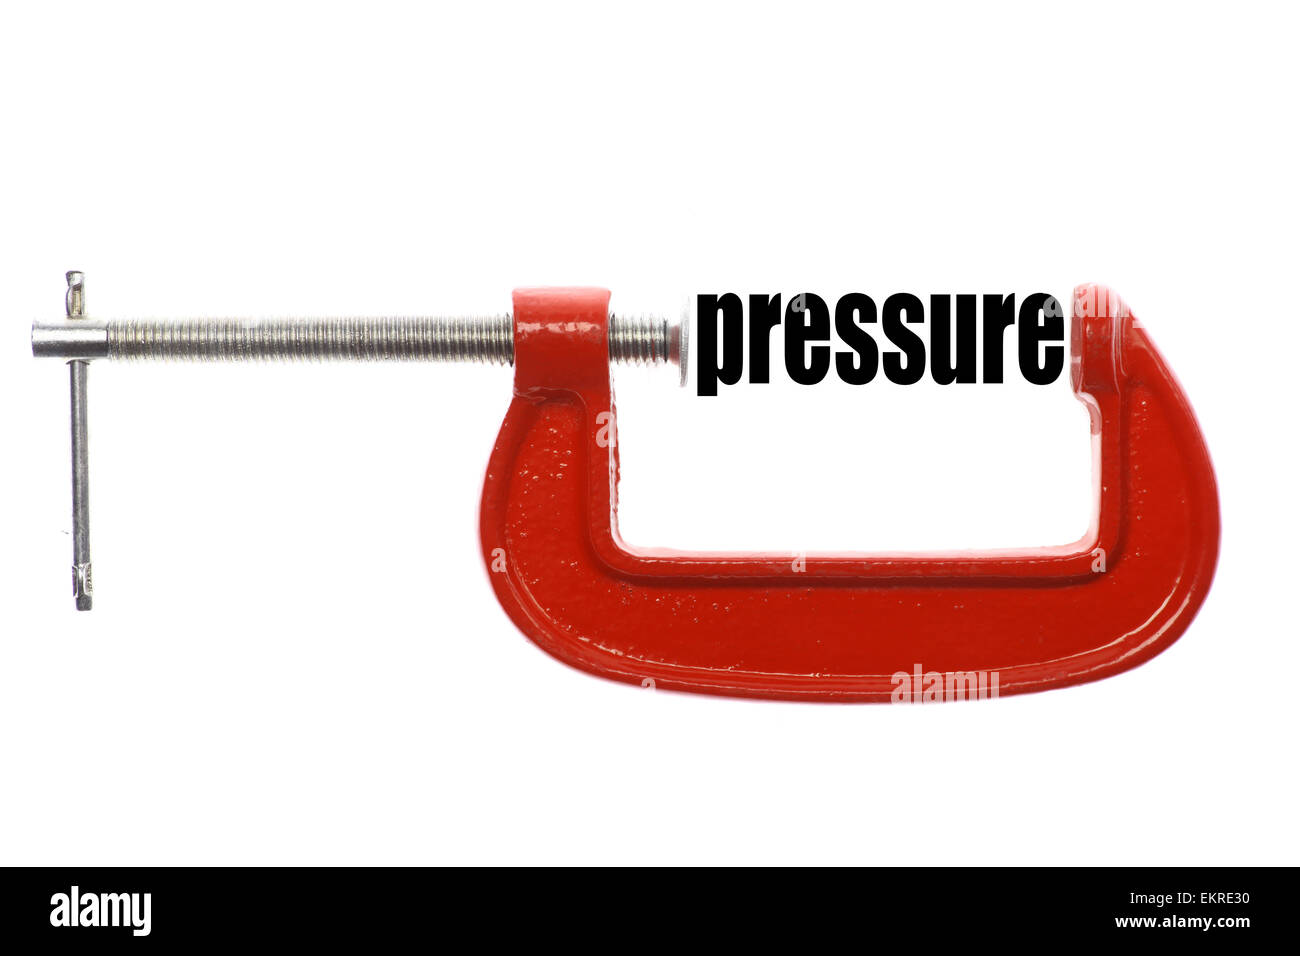 The word 'pressure' is compressed with a vice. - Stock Image